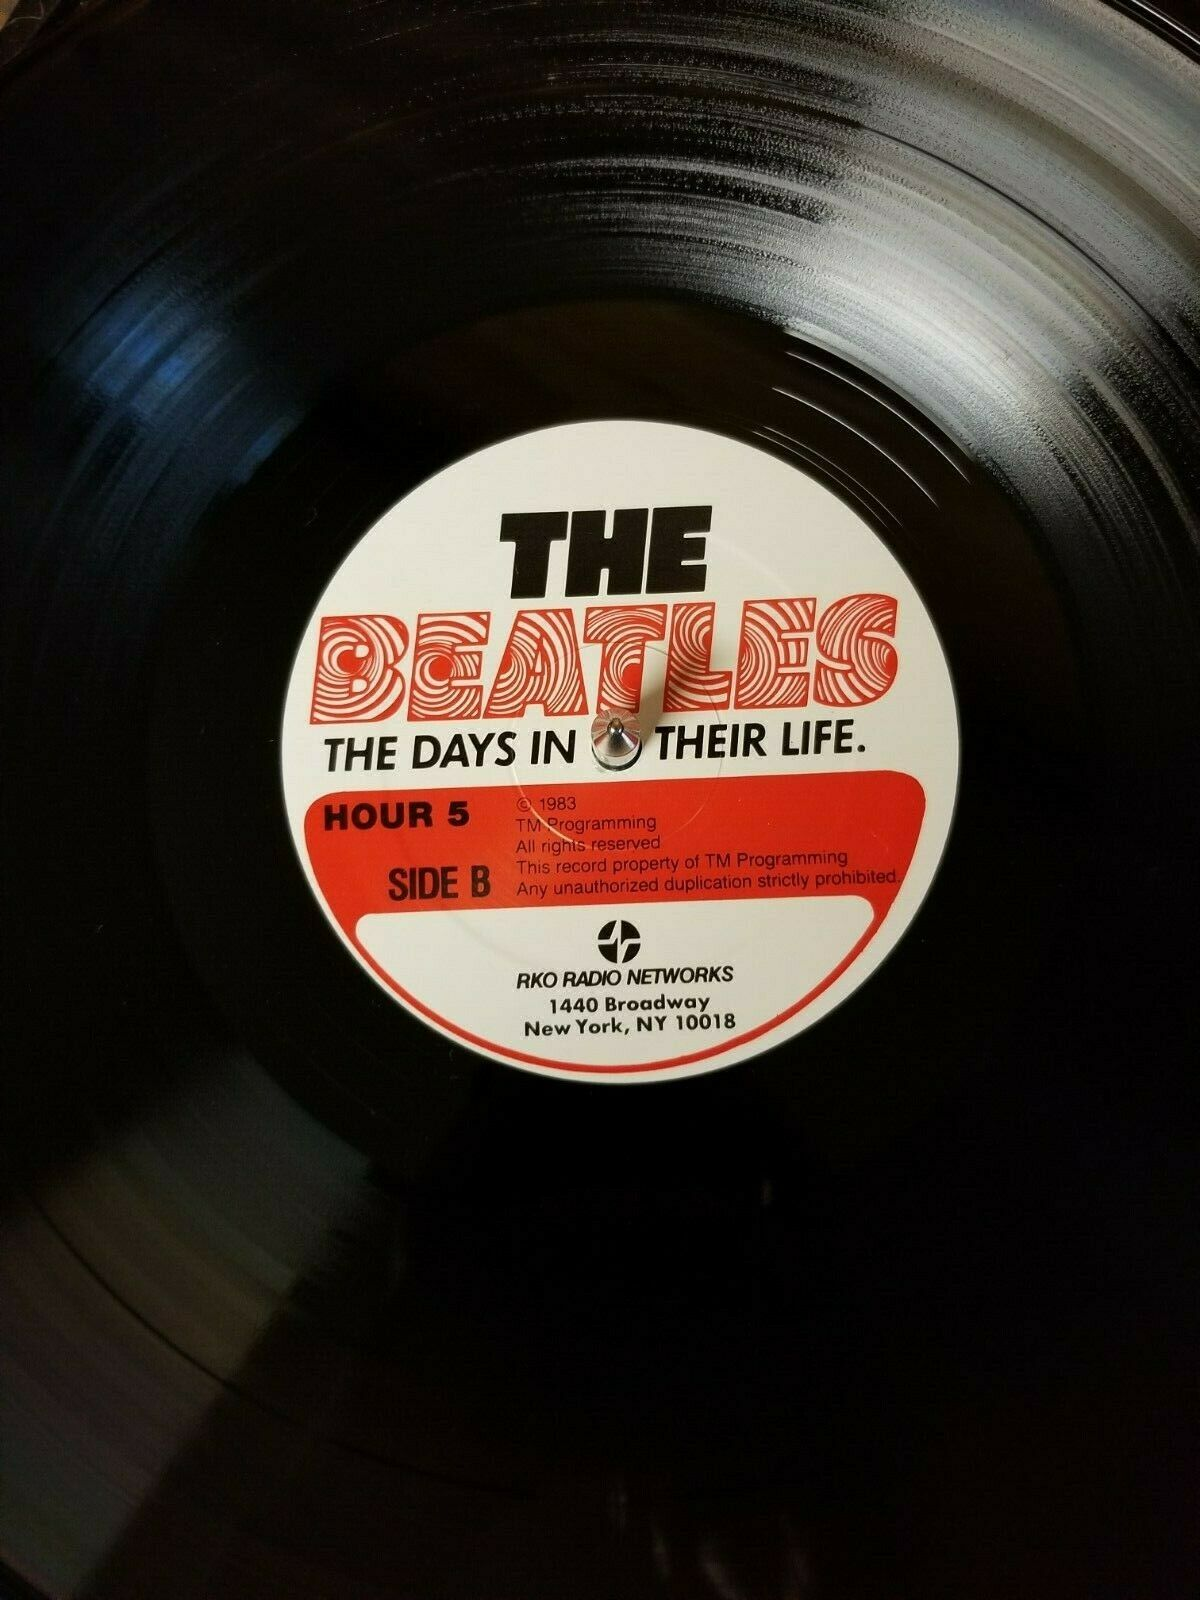 THE BEATLES: THE DAYS IN THEIR LIFE, 30 LPs, 30 HRS, RADIO SHOW/SPECIAL, EX/NM